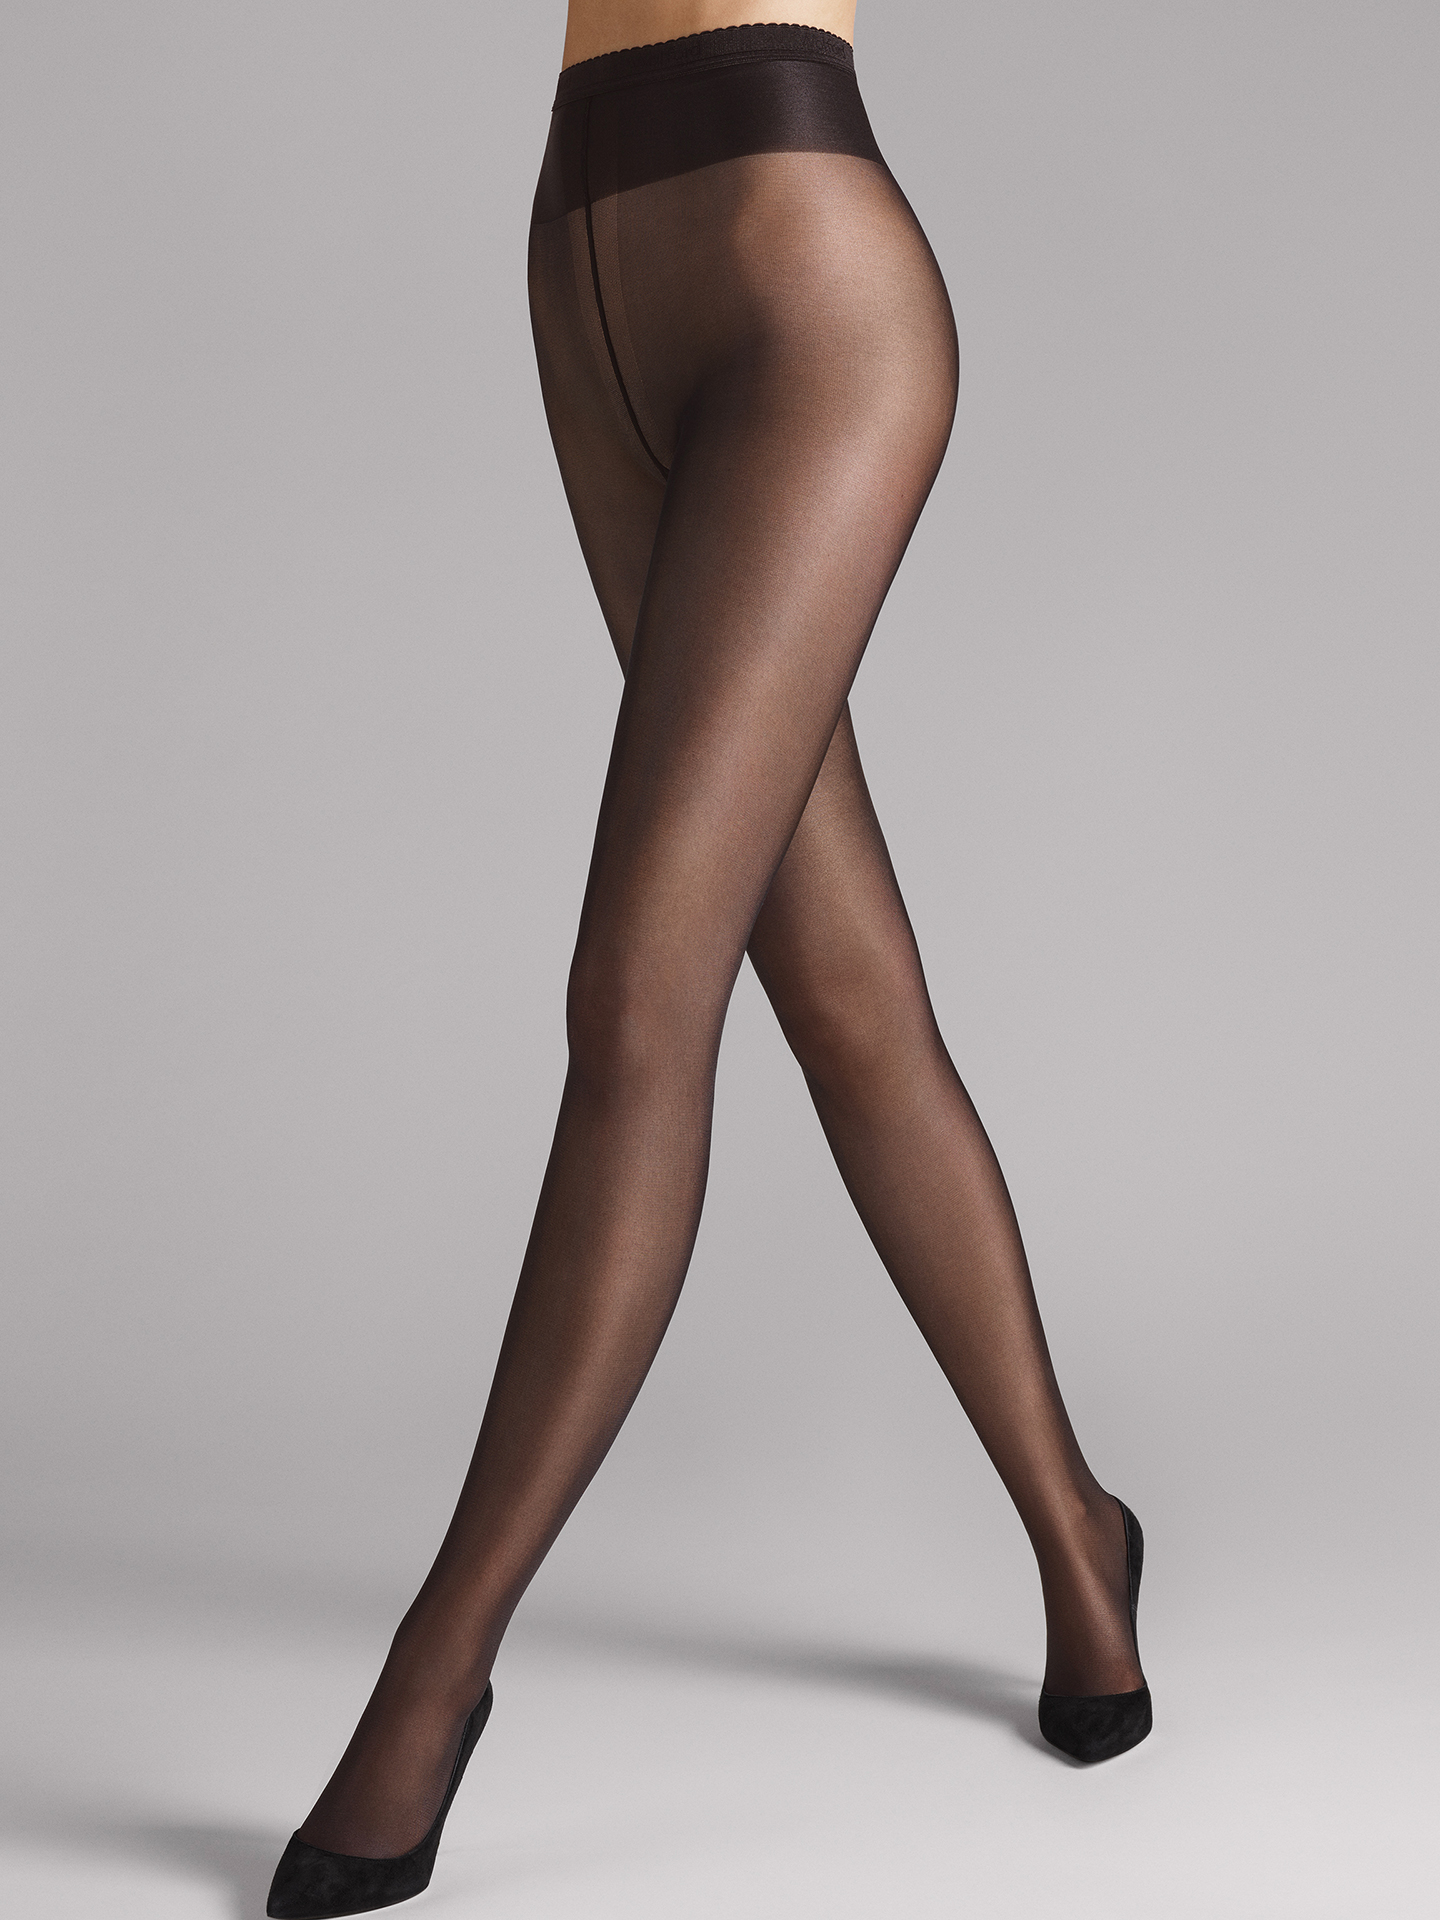 Wolford Apparel & Accessories > Clothing > Collant Neon 40 - 7212 - M